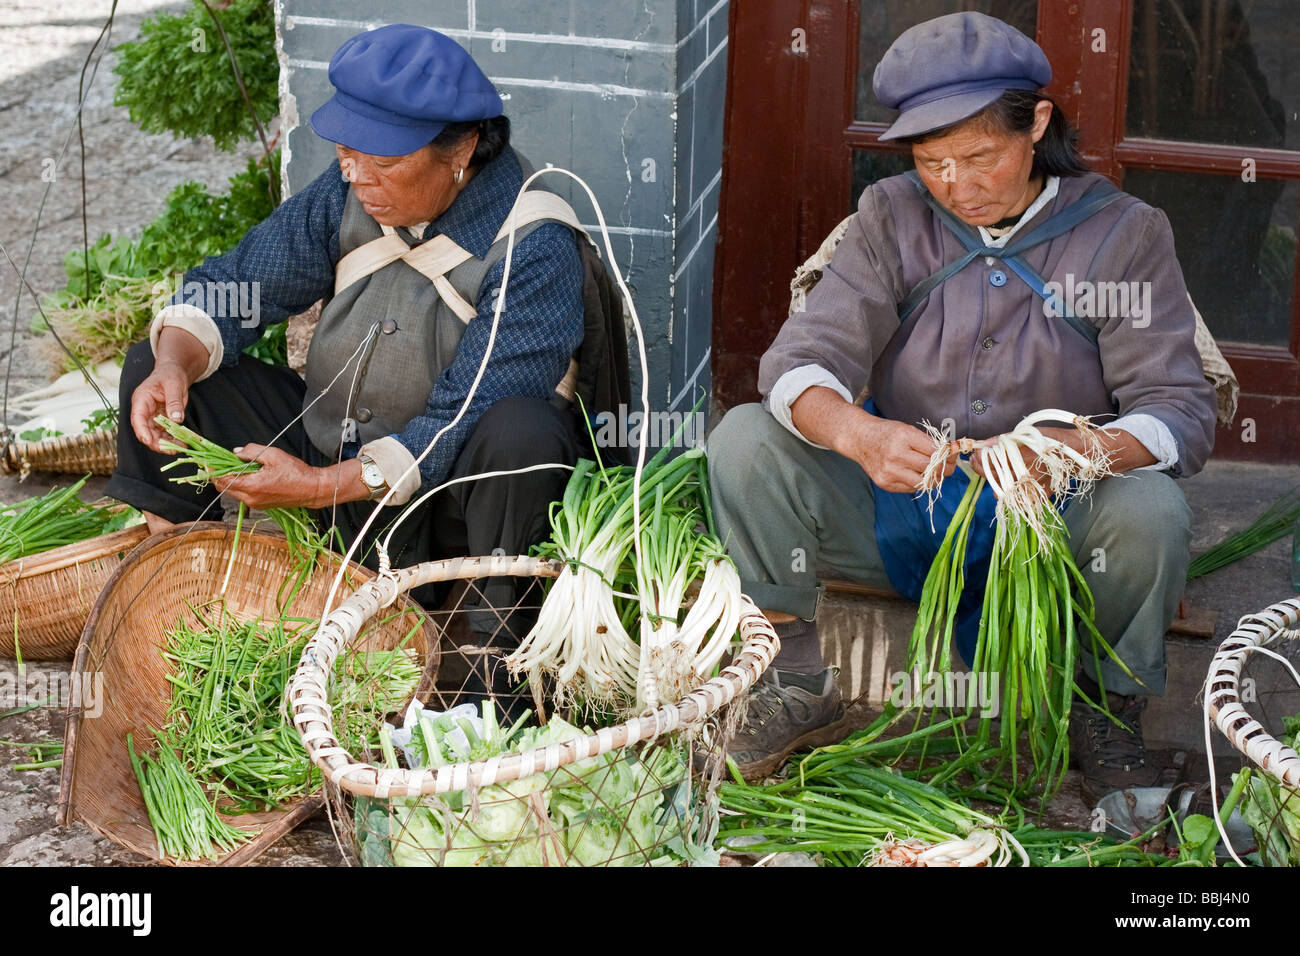 Two women of the Naxi tribe preparing vegetables for sale on the street at Lijiang old town, Yunnan, China - Stock Image